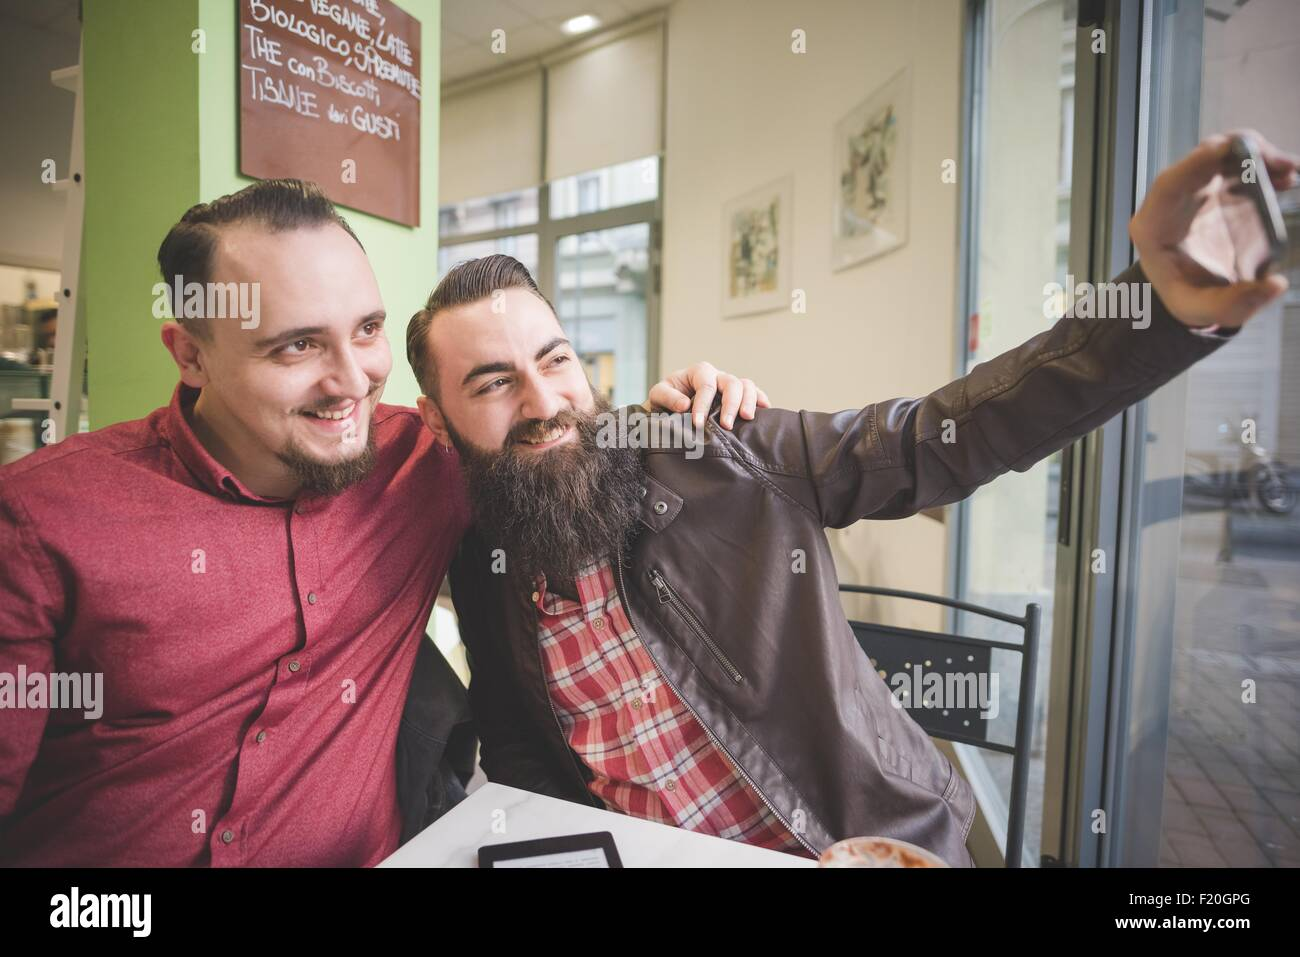 Gay couple taking selfie in cafe - Stock Image